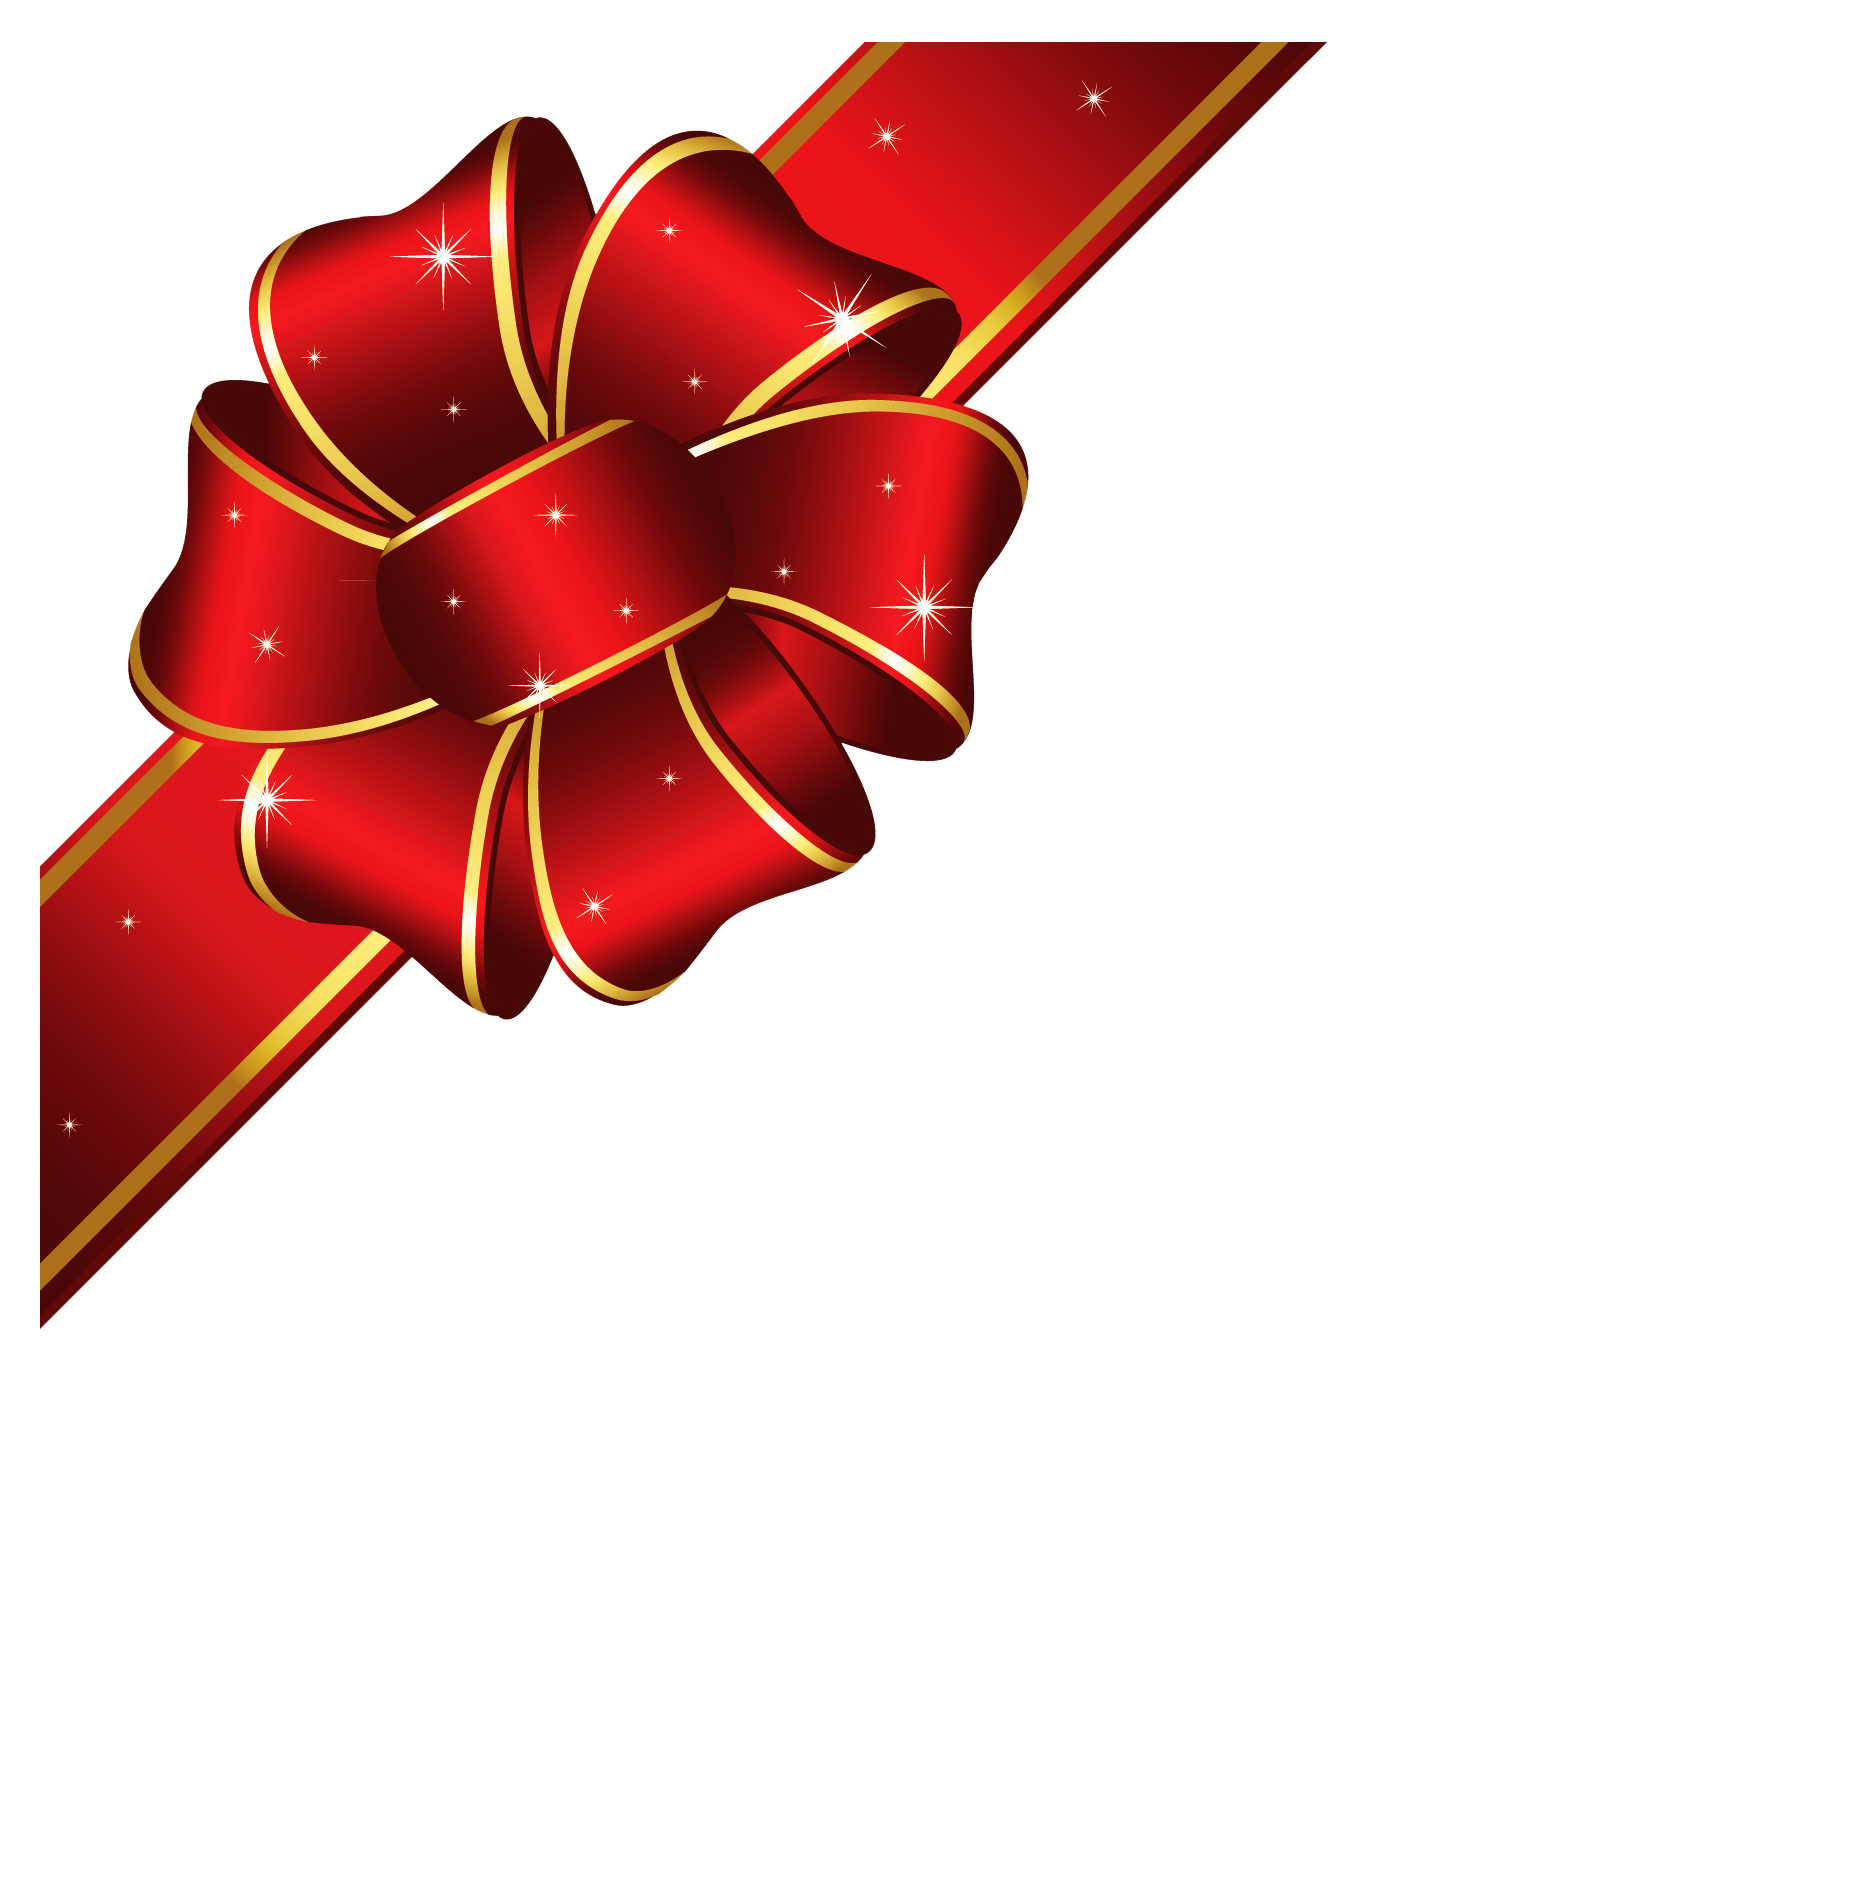 Gift Red Ribbon Image Gift Red Ribbon Image Png Transparent Background Free Download 816 Freeiconspng